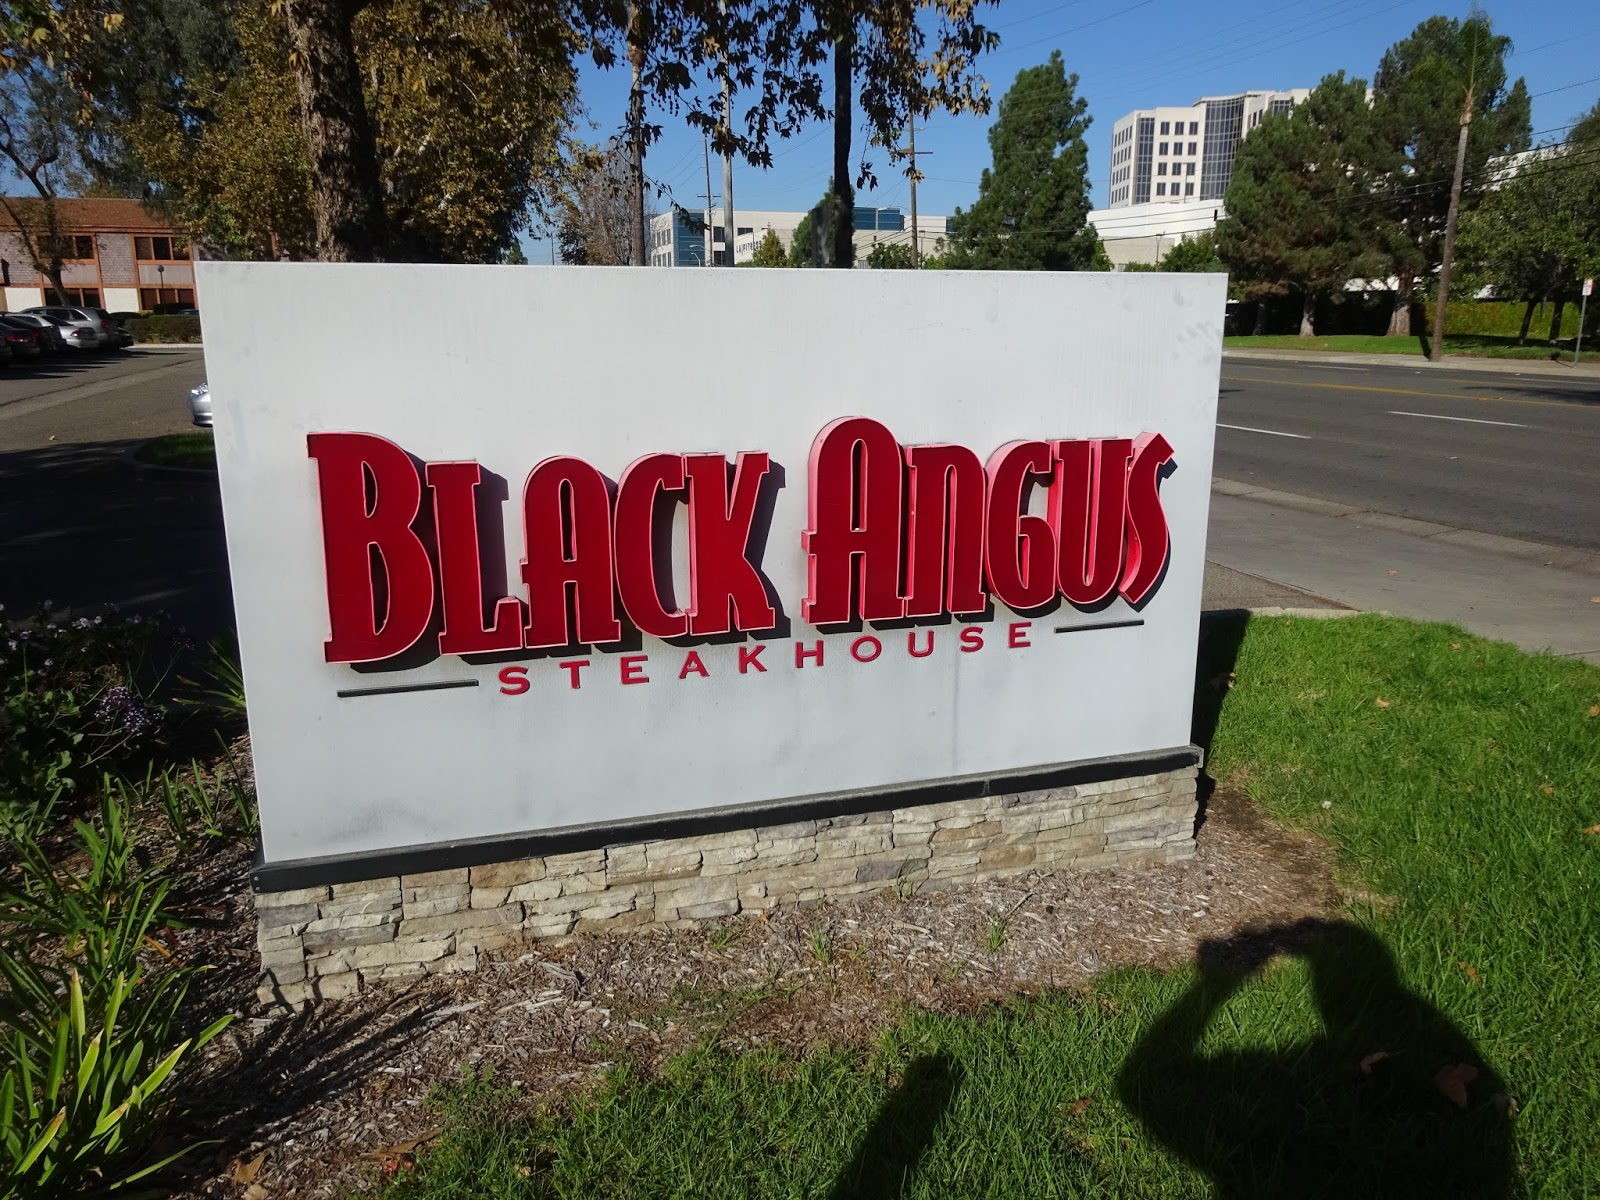 Cucina Alessa Reviews Eating My Way Through Oc Back To Black Angus